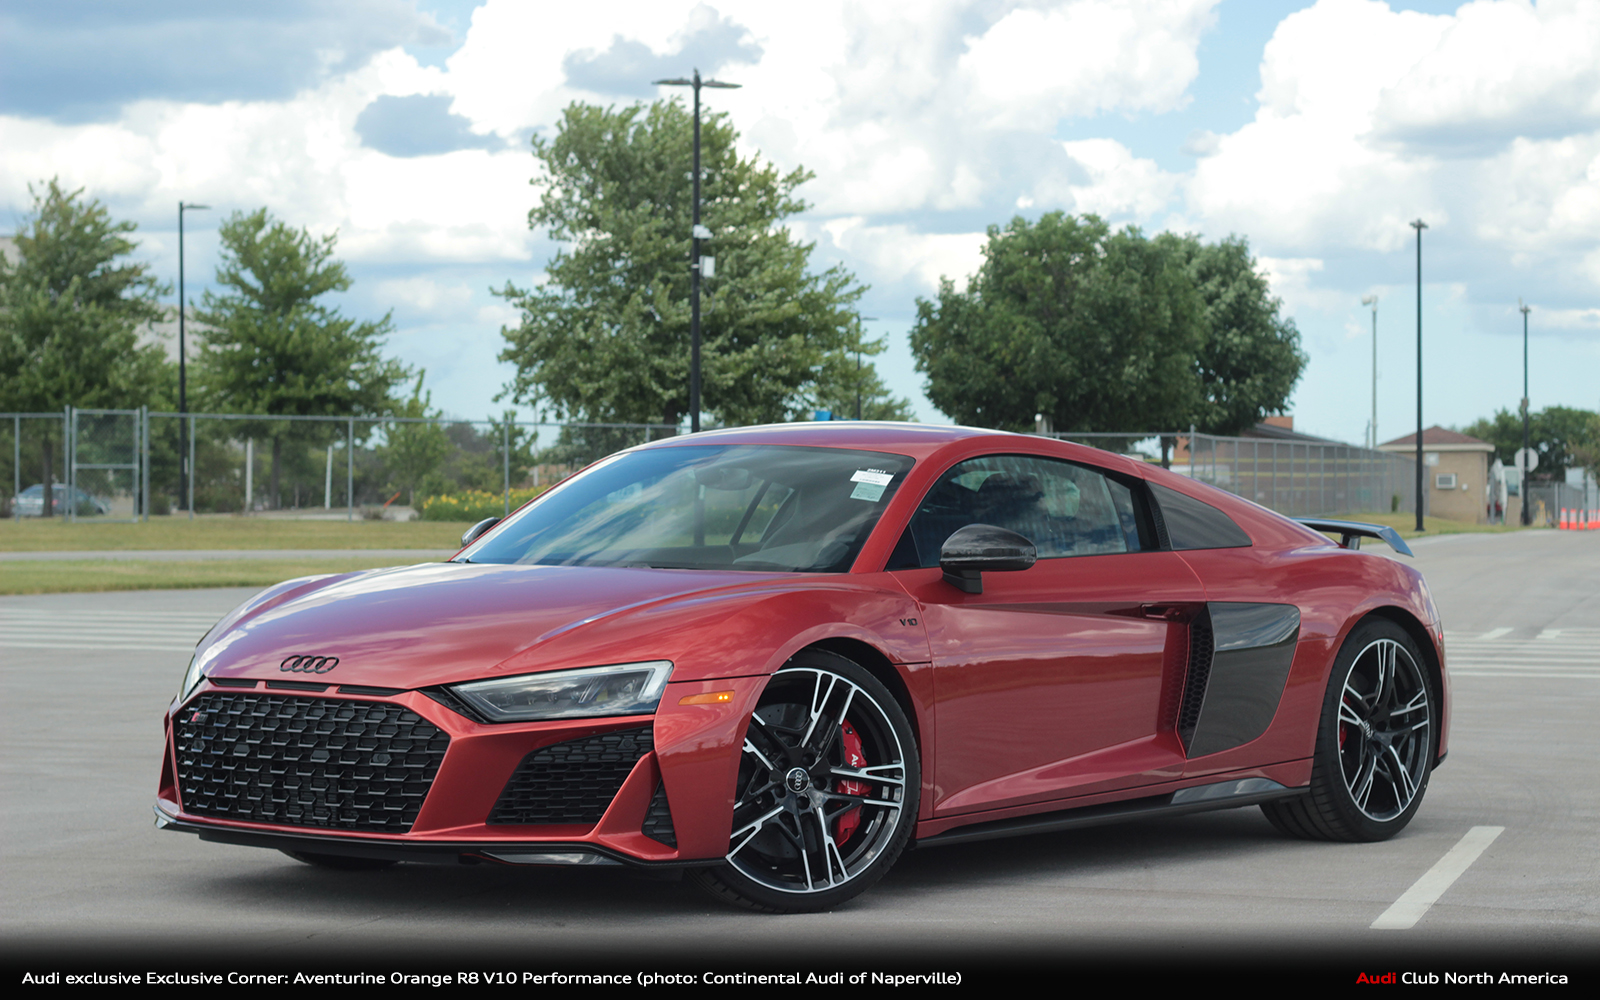 Audi exclusive Exclusive Corner: Aventurine Orange R8 V10 Performance